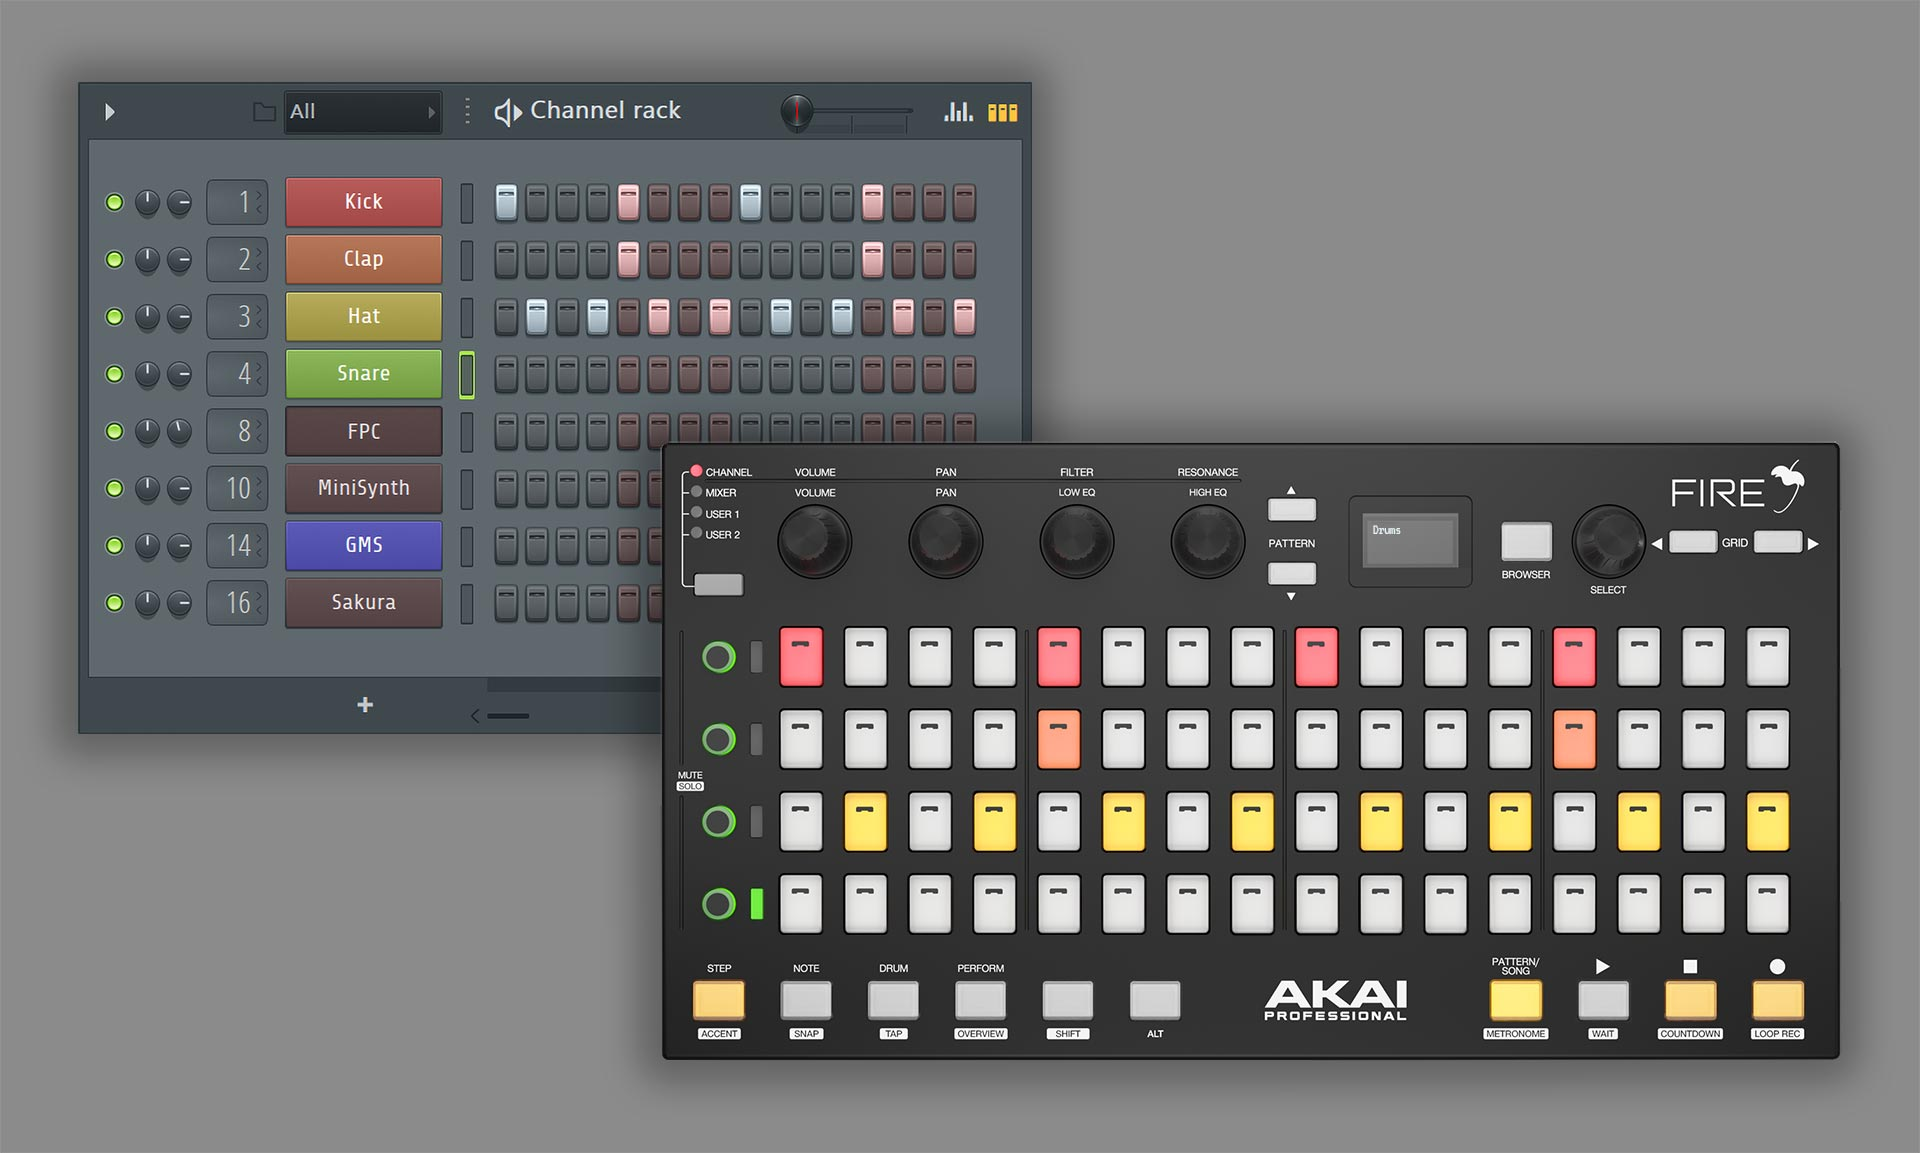 Does the new Akai Fire work with a cracked version of FL studio